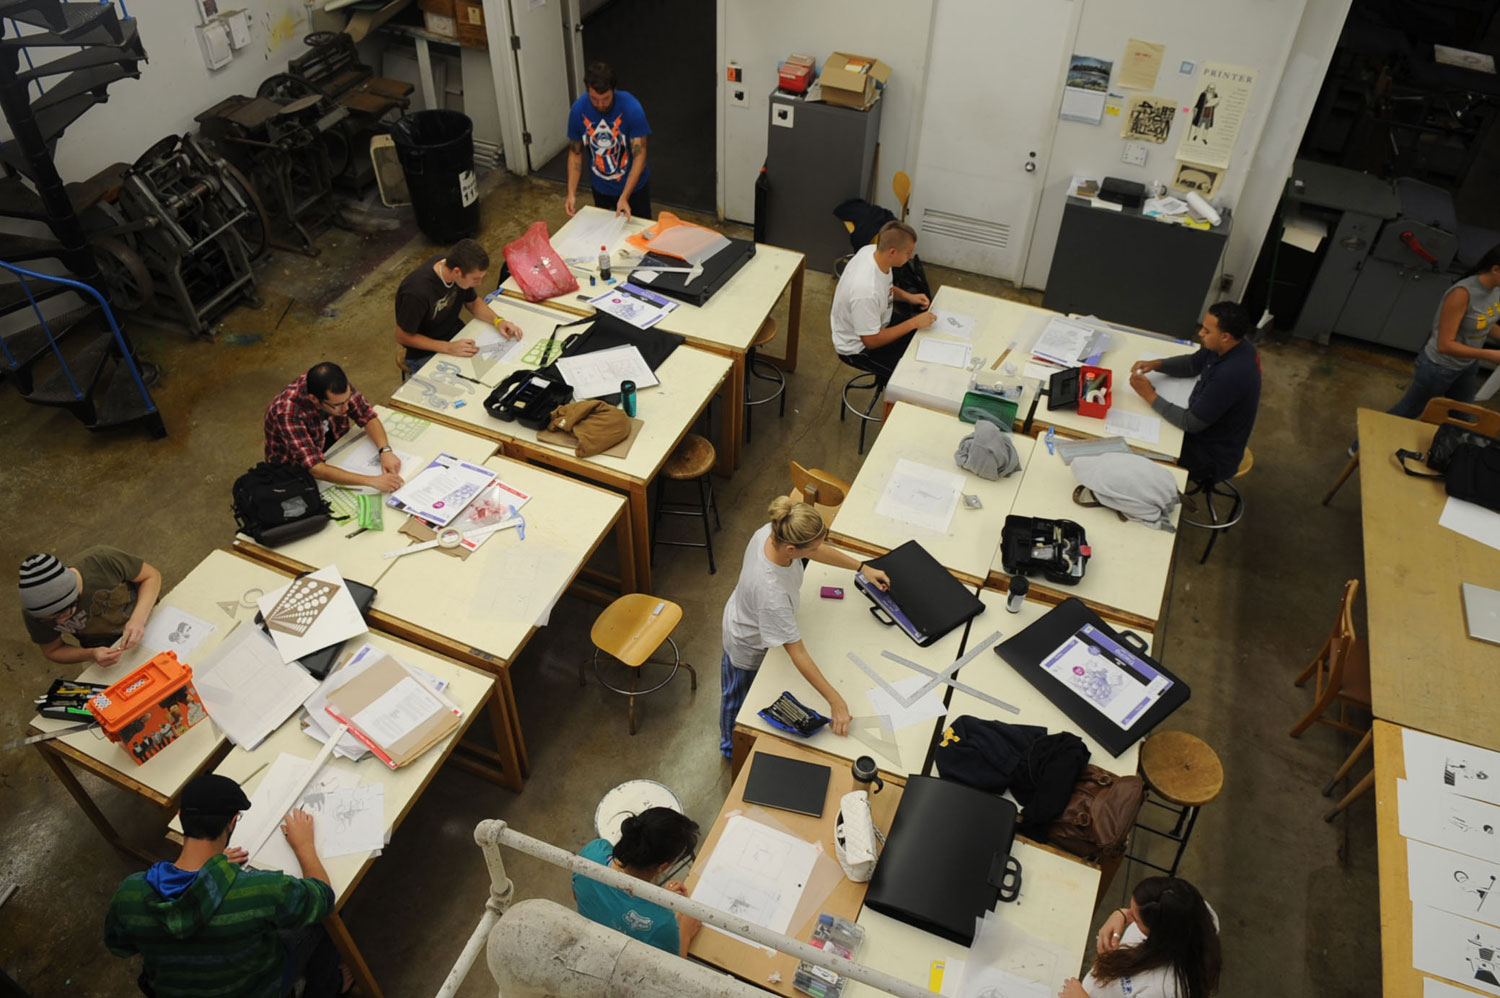 Students work on class projects in a classroom in the School of Art.